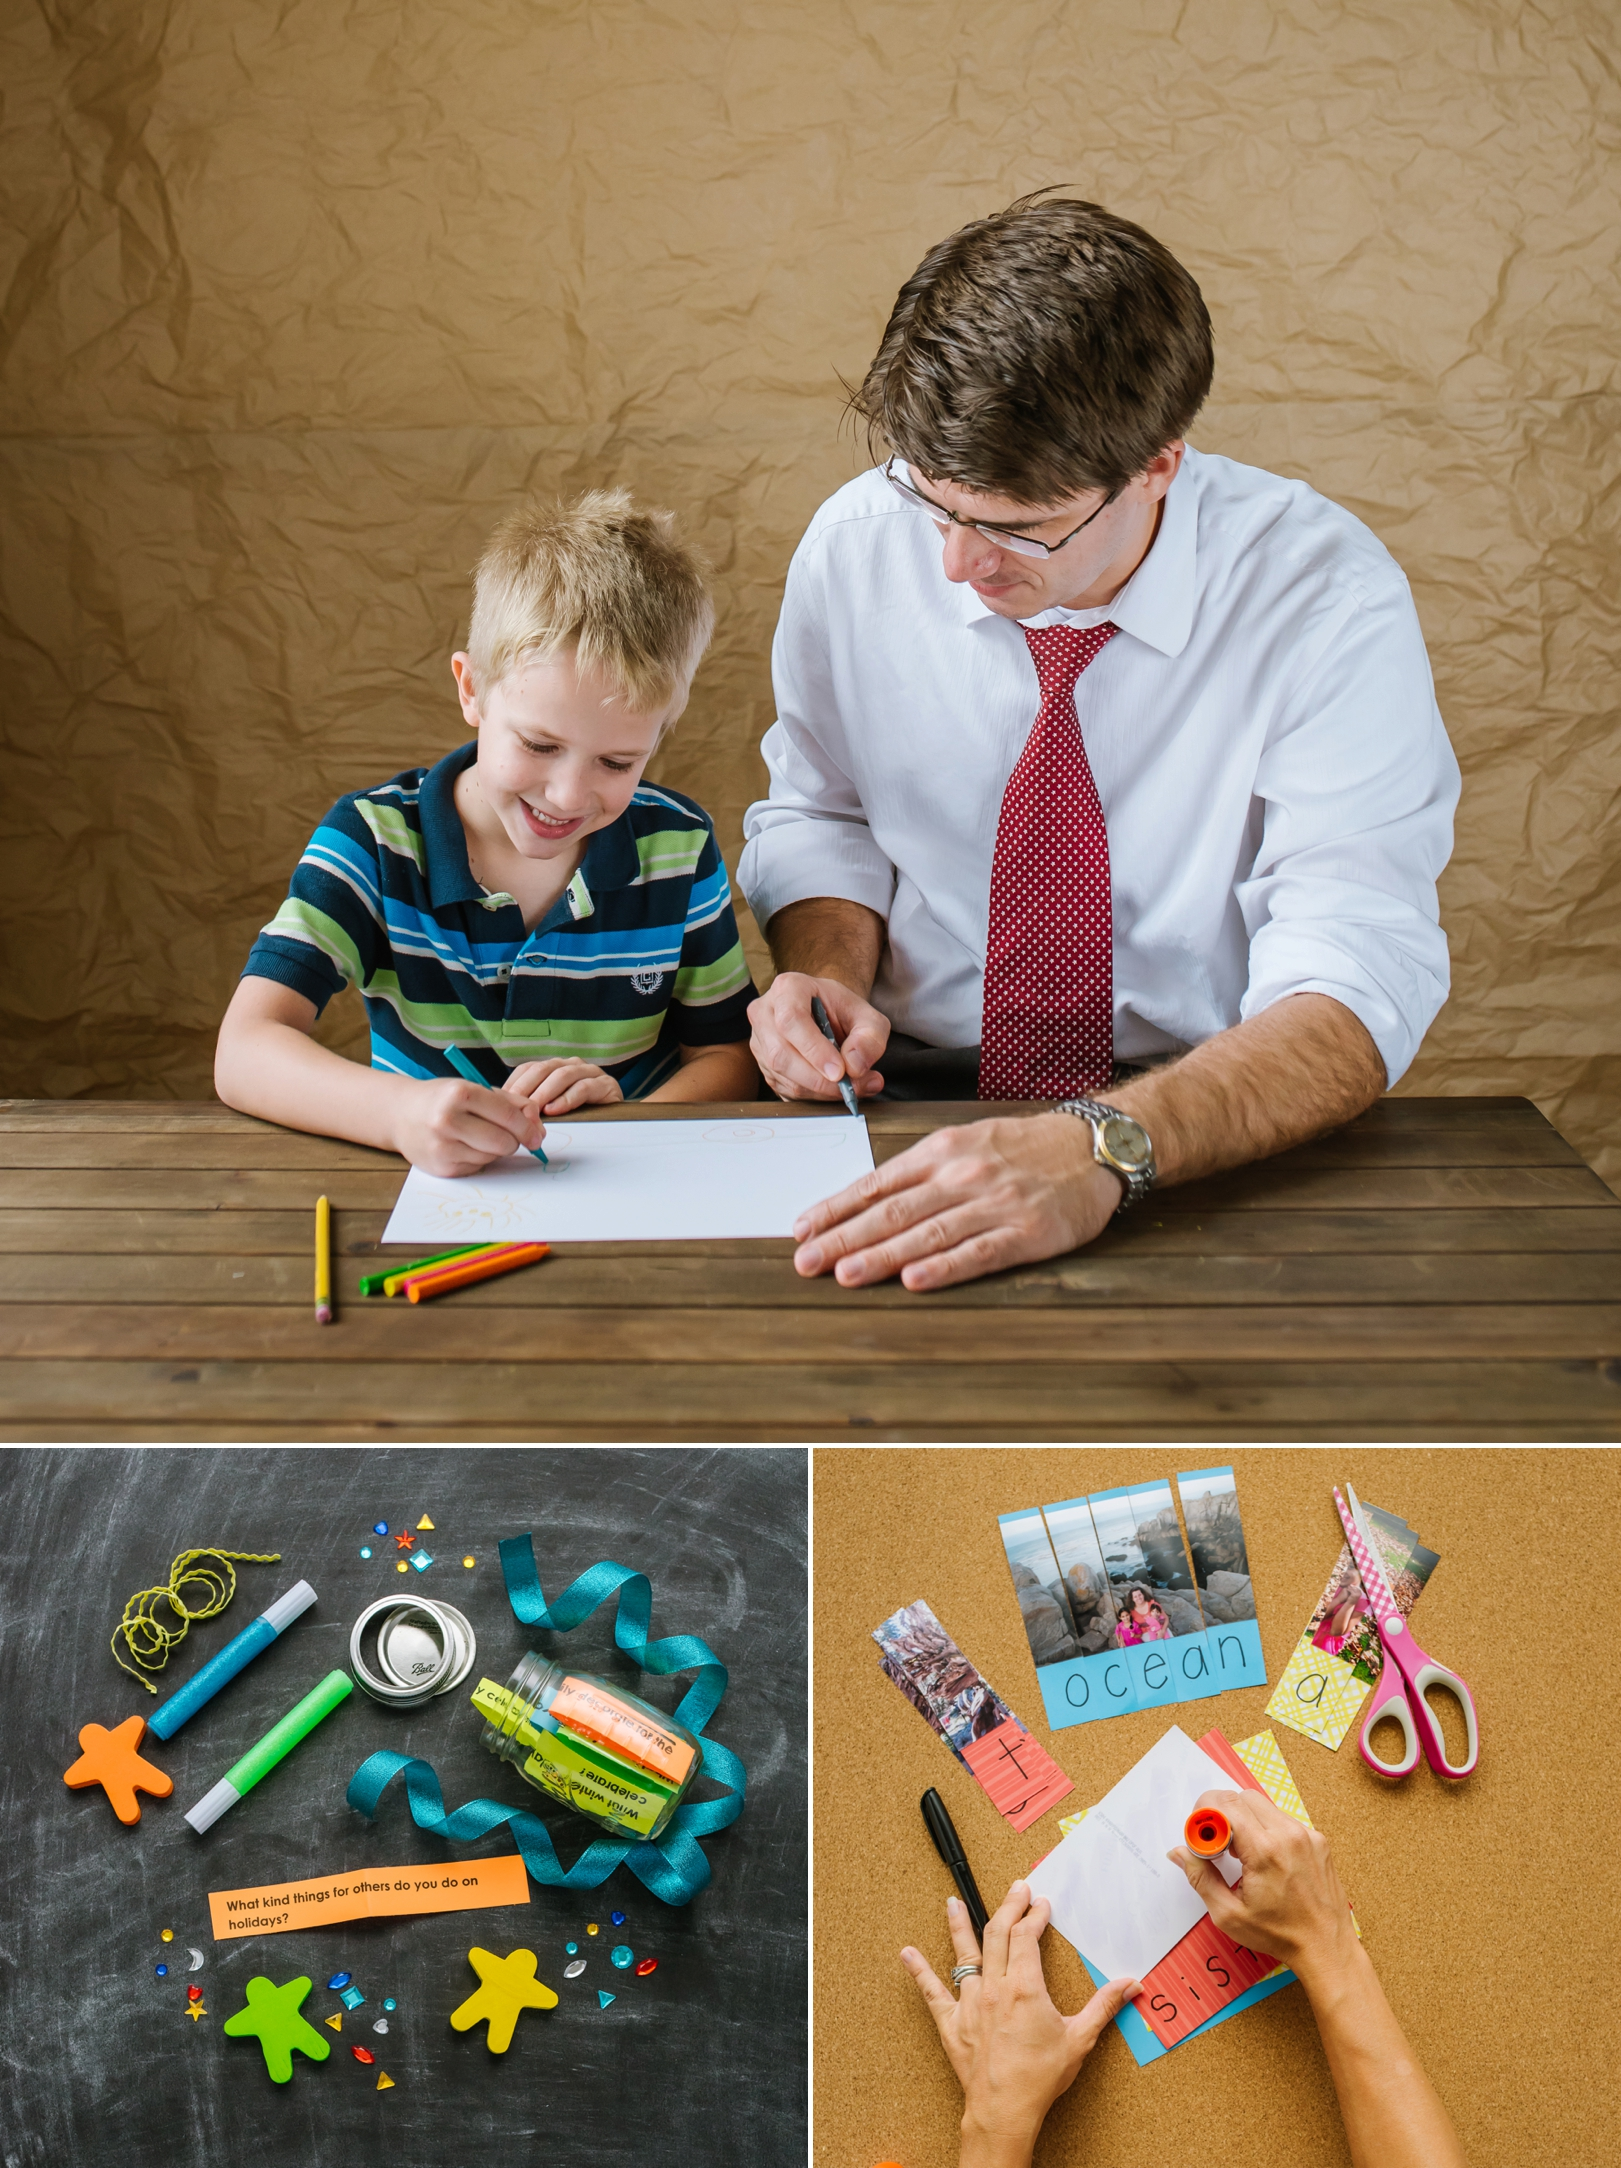 tampa-product-photography-kids-craft-book_0004.jpg